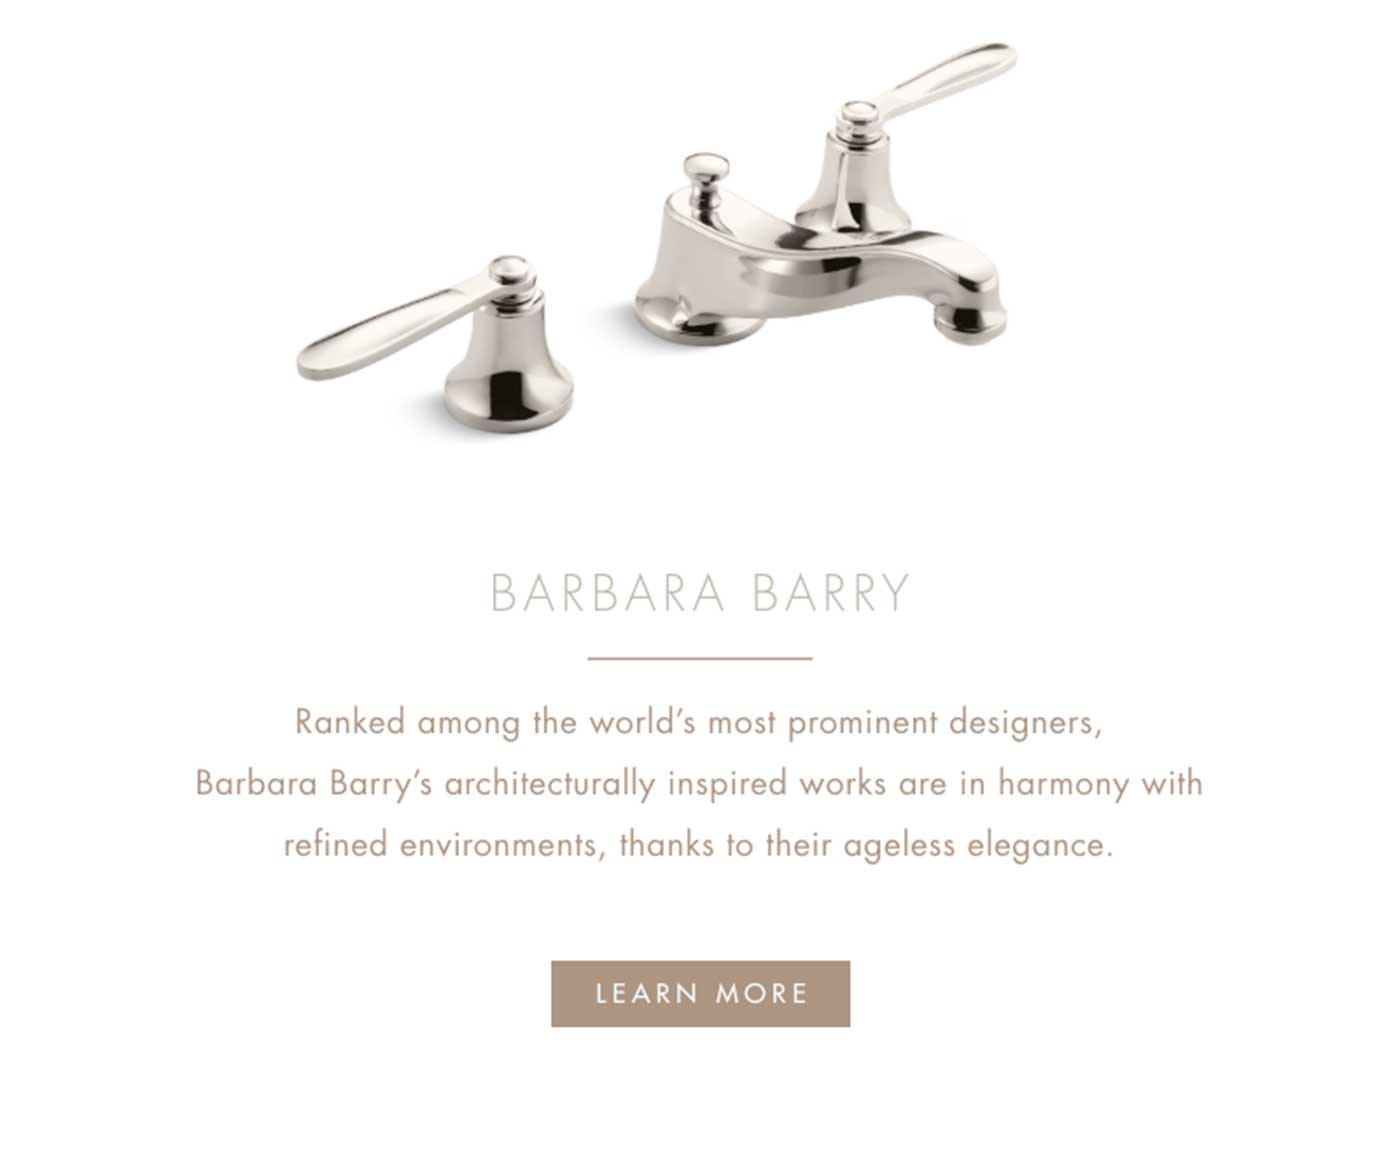 BARBARA BARRY | Ranked among the world's most prominent designers, Barbara Barry's architecturally inspired works are in harmony with refined environments, thanks to their ageless elegance. | LEARN MORE